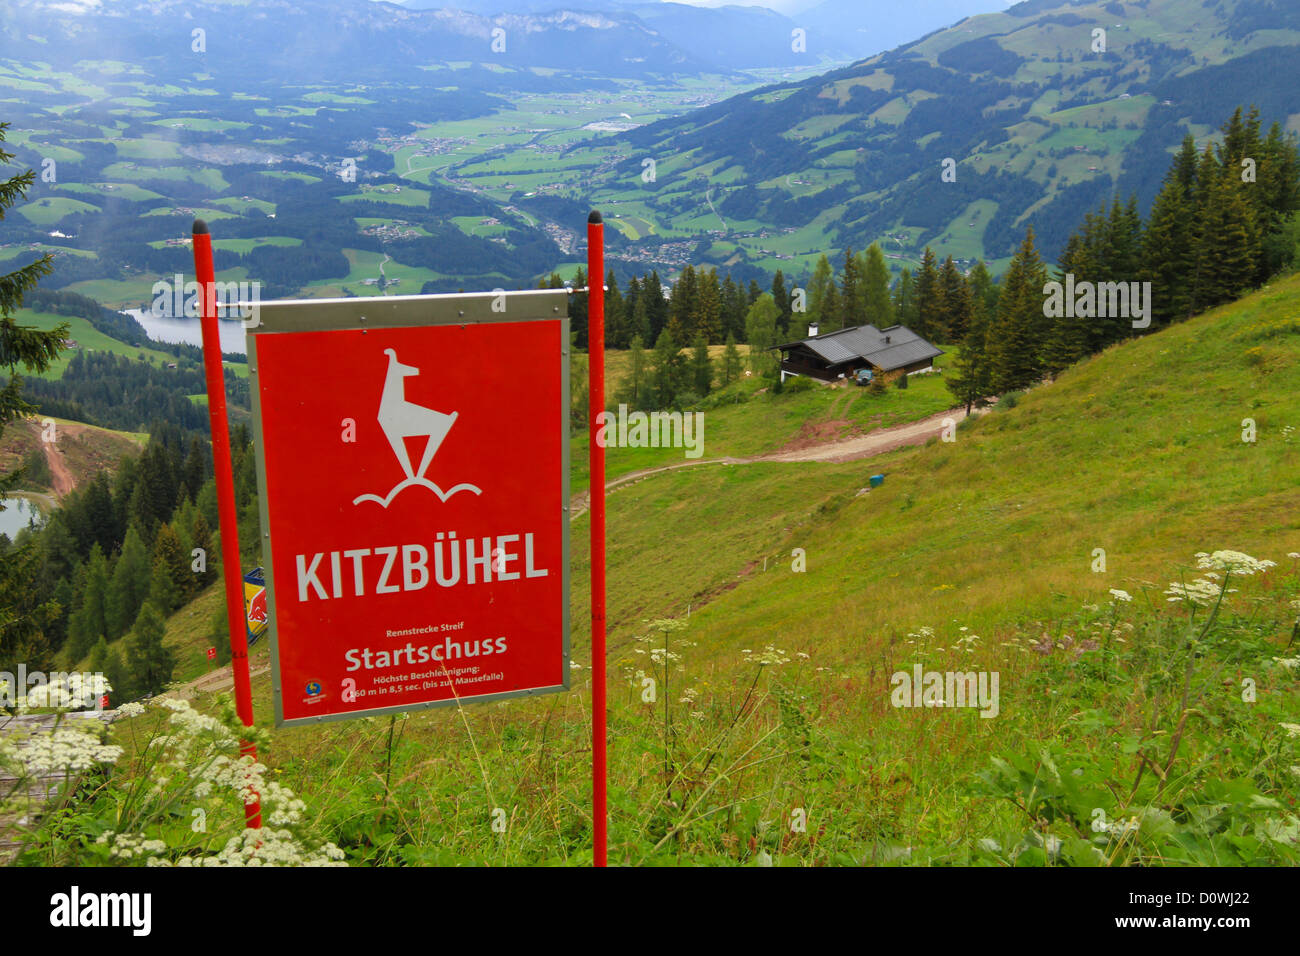 Hahnenkamm Rennen Start Point of the World Famous Kitzbuehel Ski race in the European Alps Tirol Austria - Stock Image